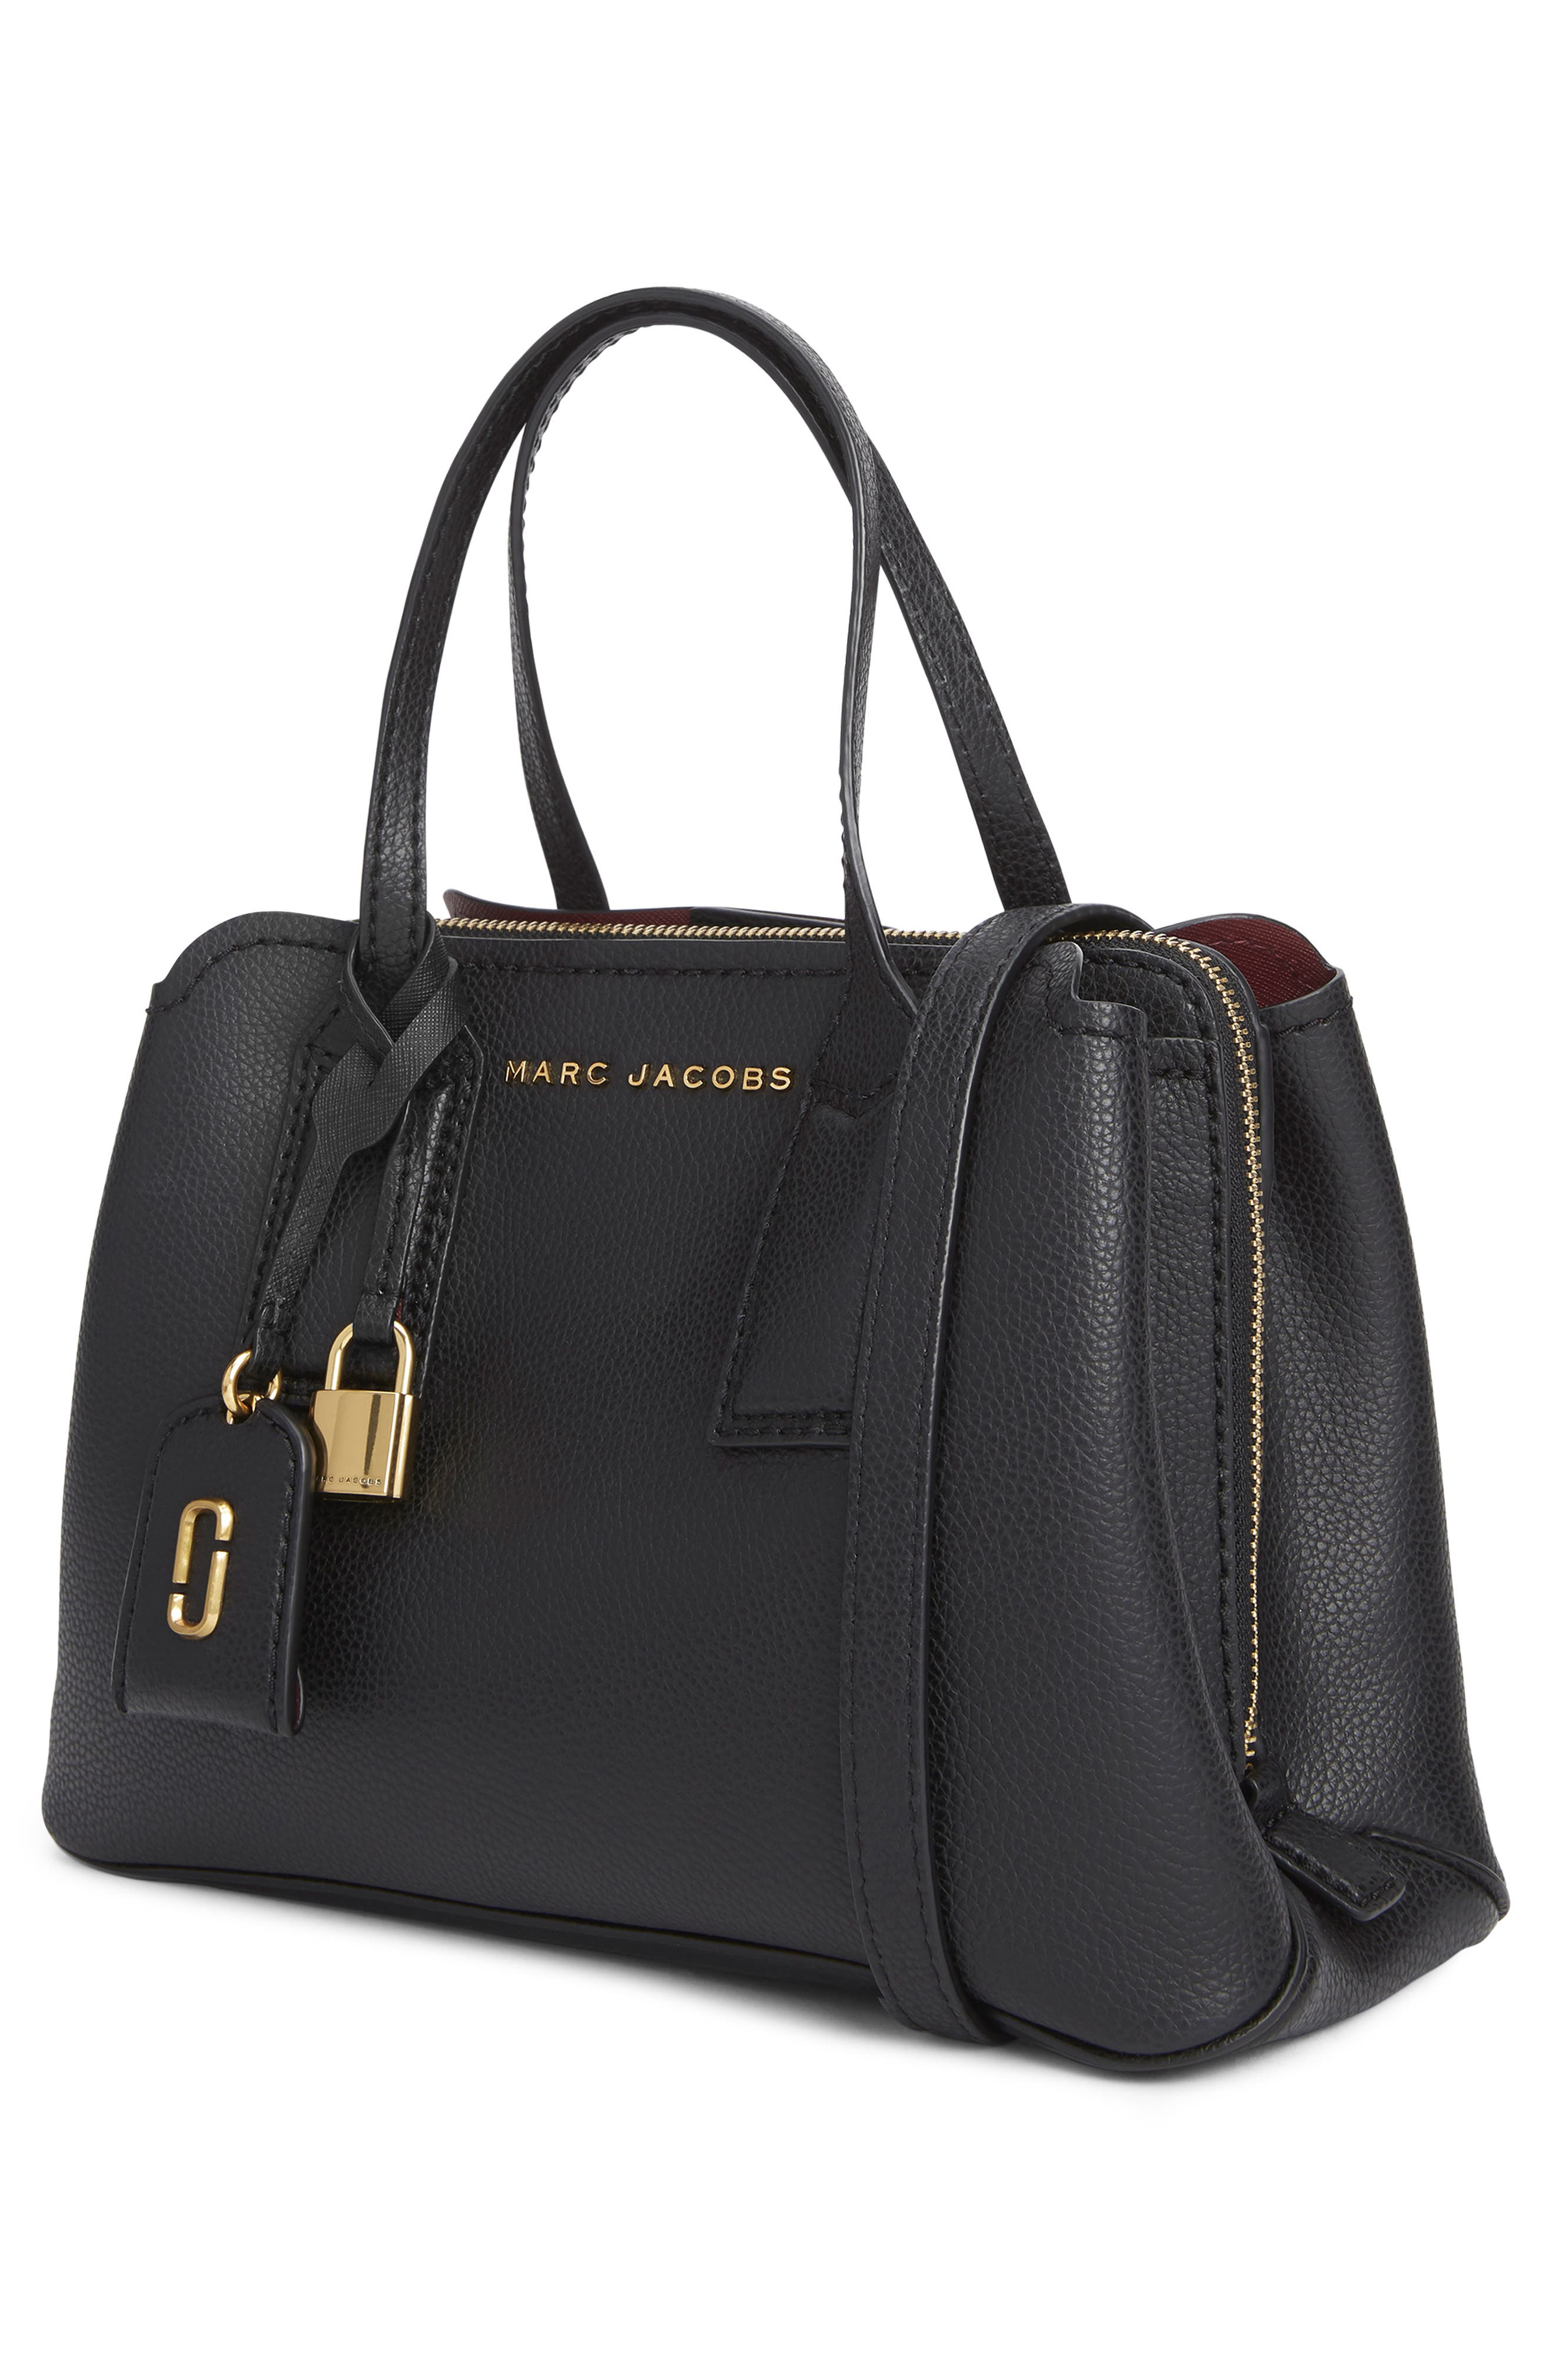 MARC JACOBS, The Editor 29 Leather Crossbody Bag, Alternate thumbnail 6, color, BLACK